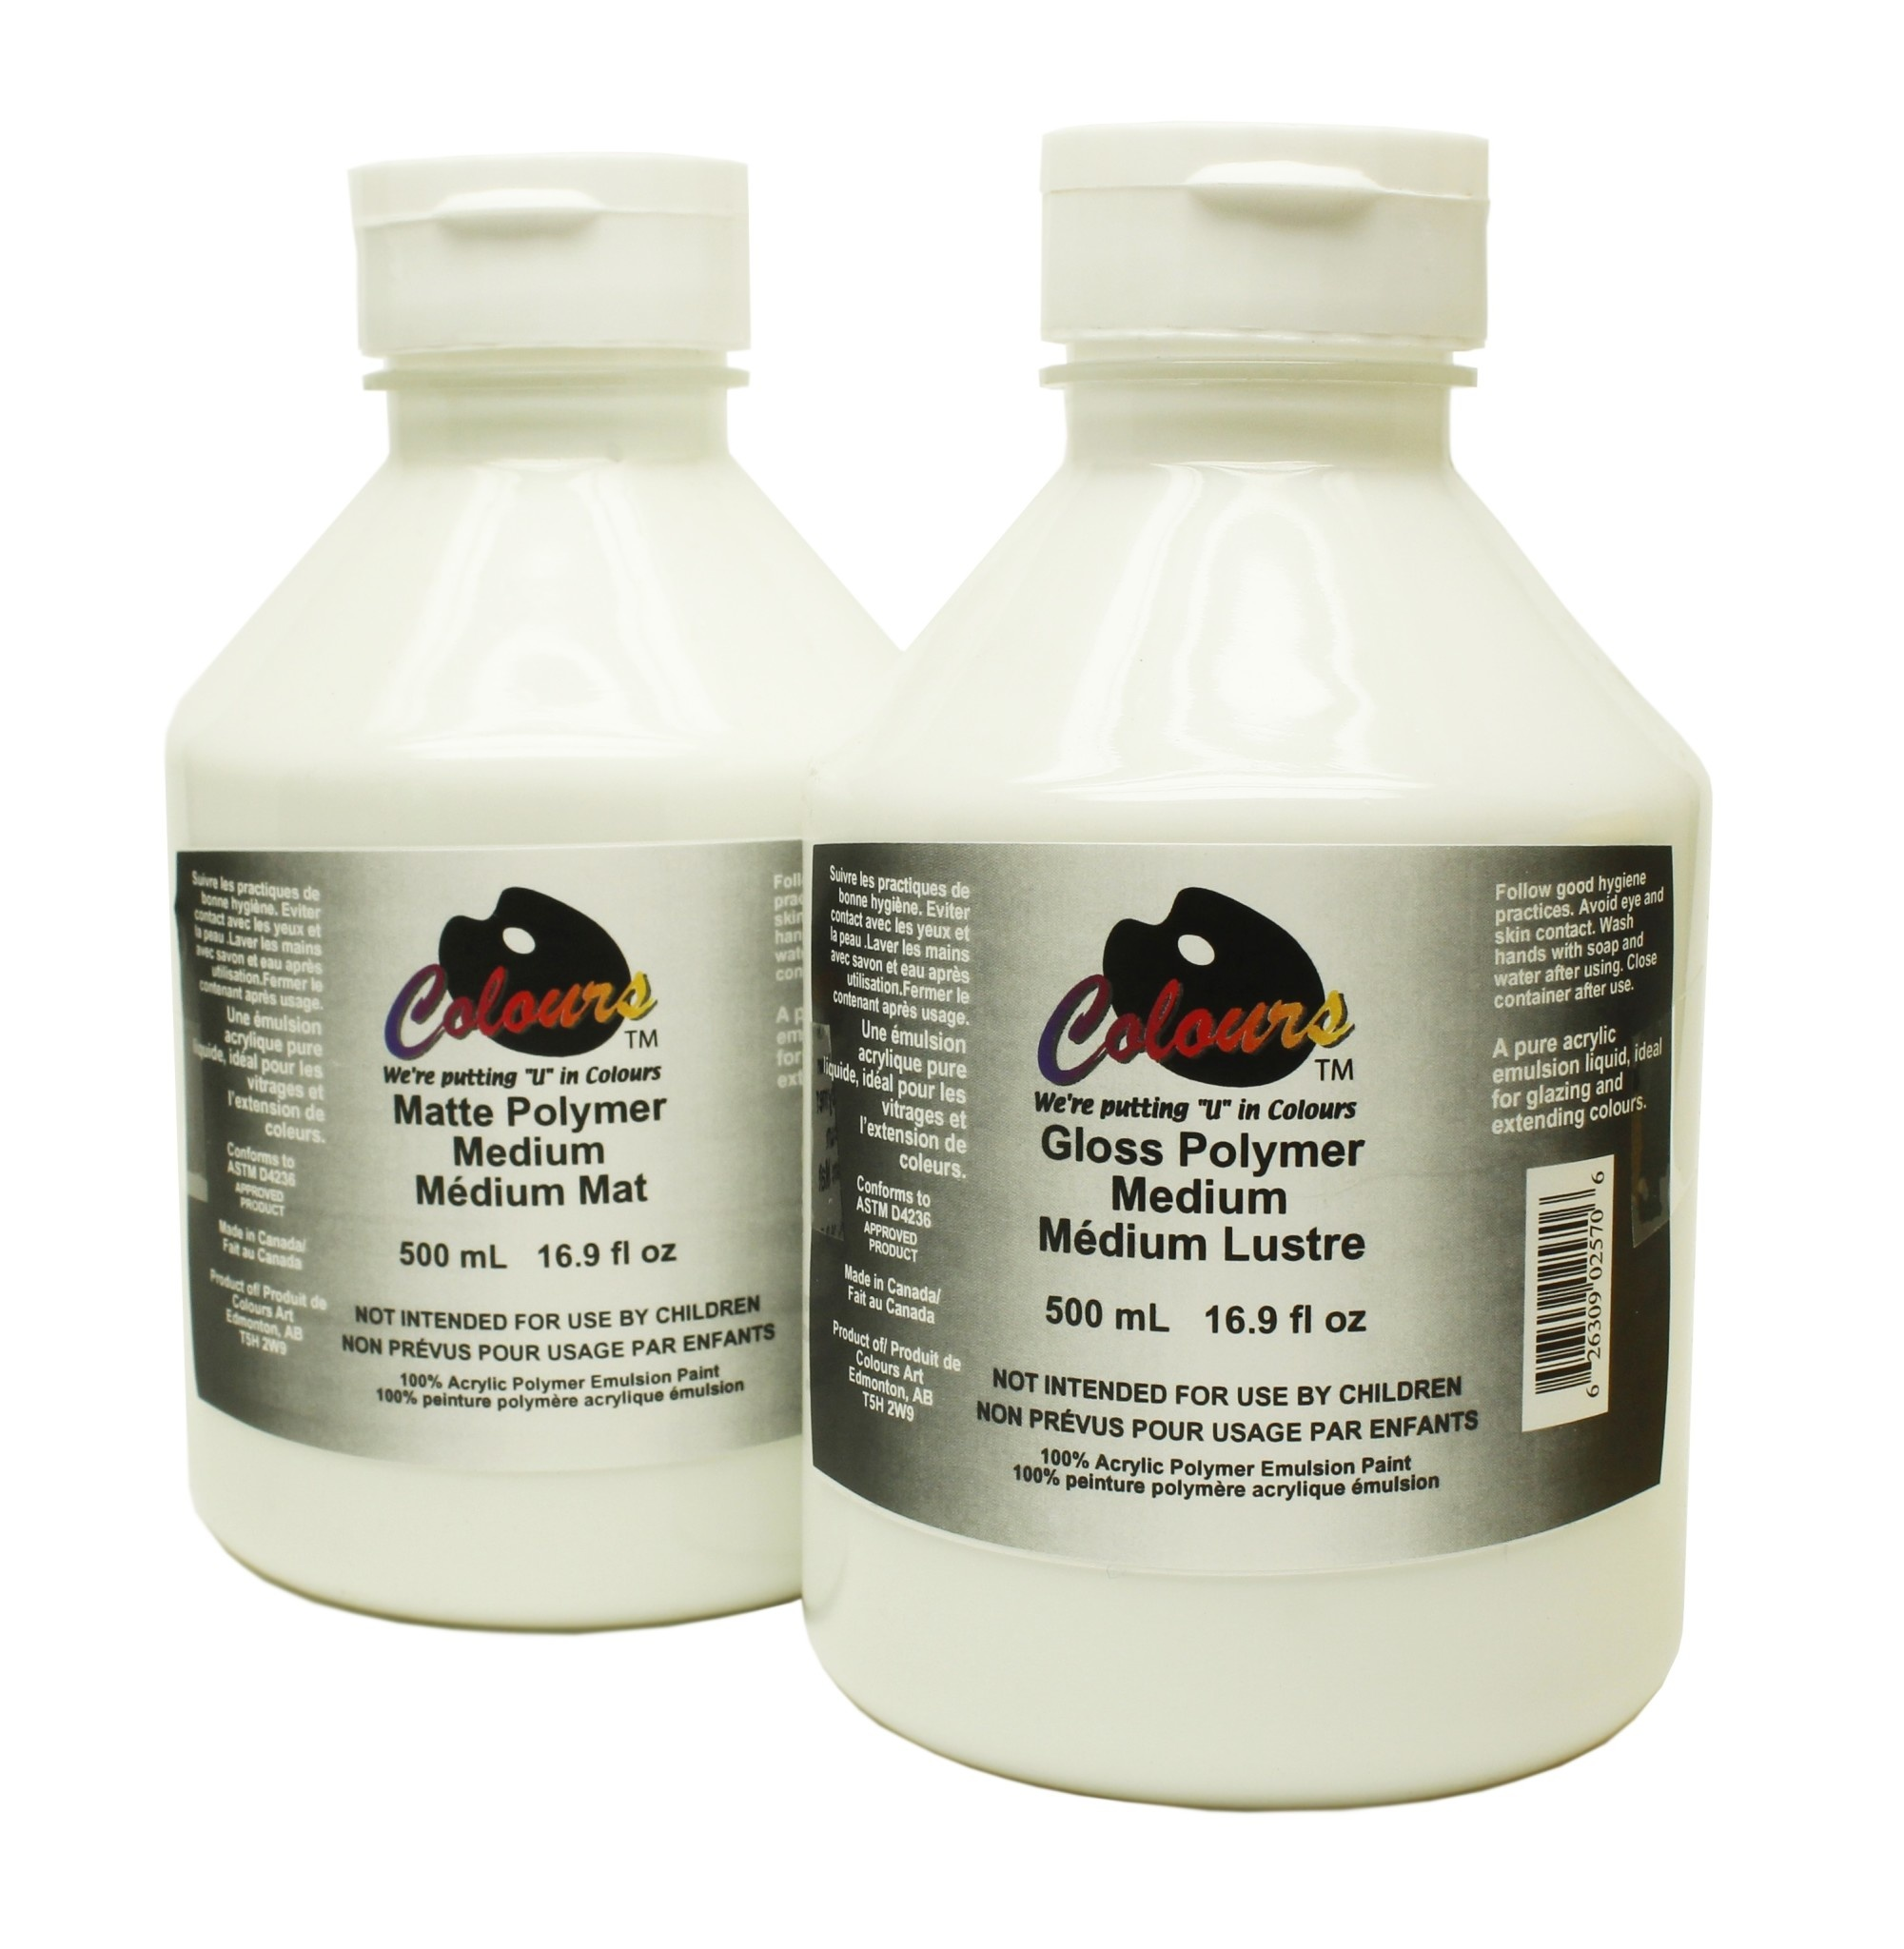 COLOURS MATTE POLYMER MEDIUM 3.8L